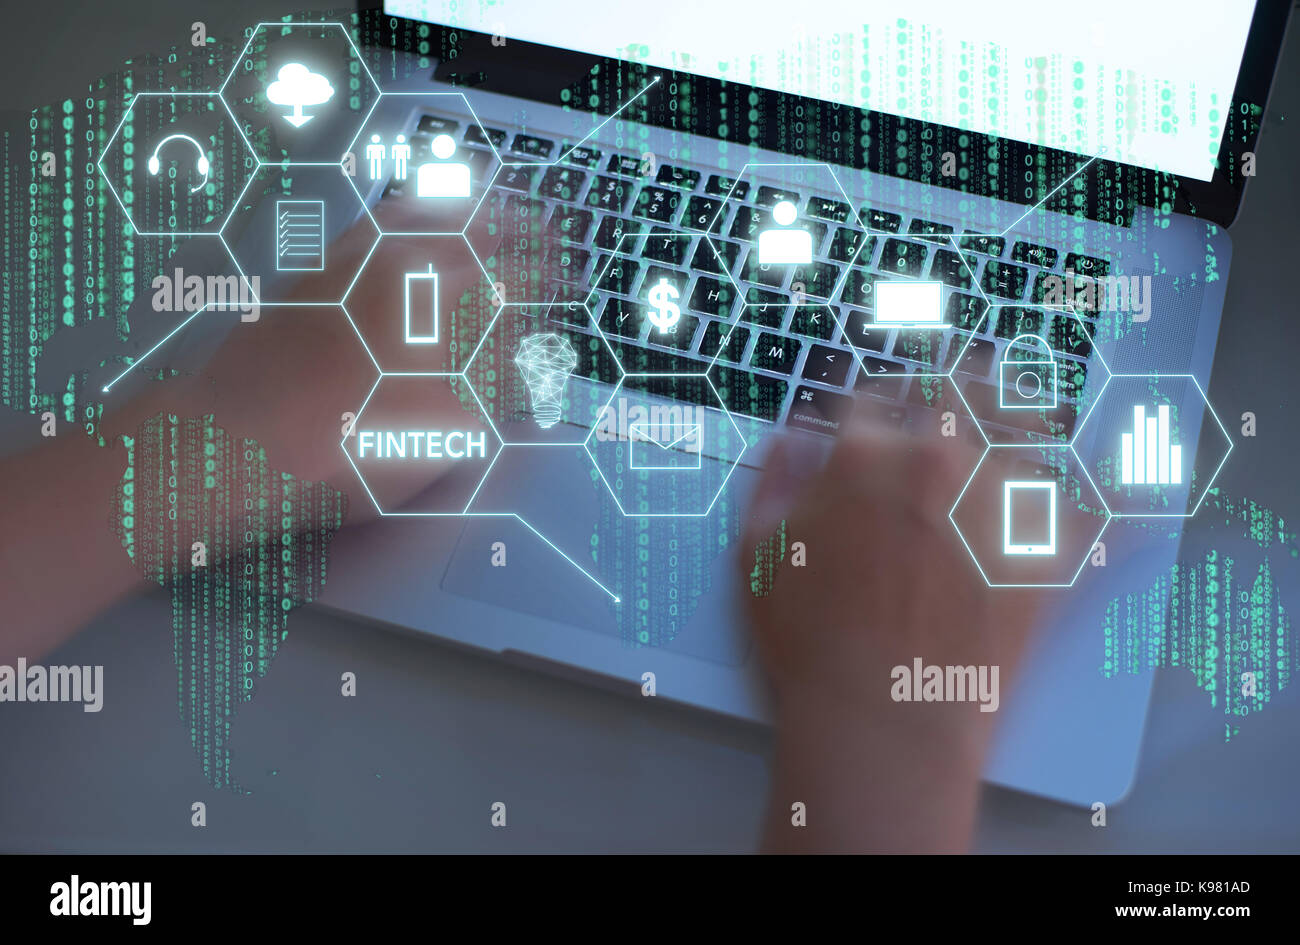 'Fintech' word on digital virtual screen with male hands typing laptop background. Hi-tech business concept - Stock Image